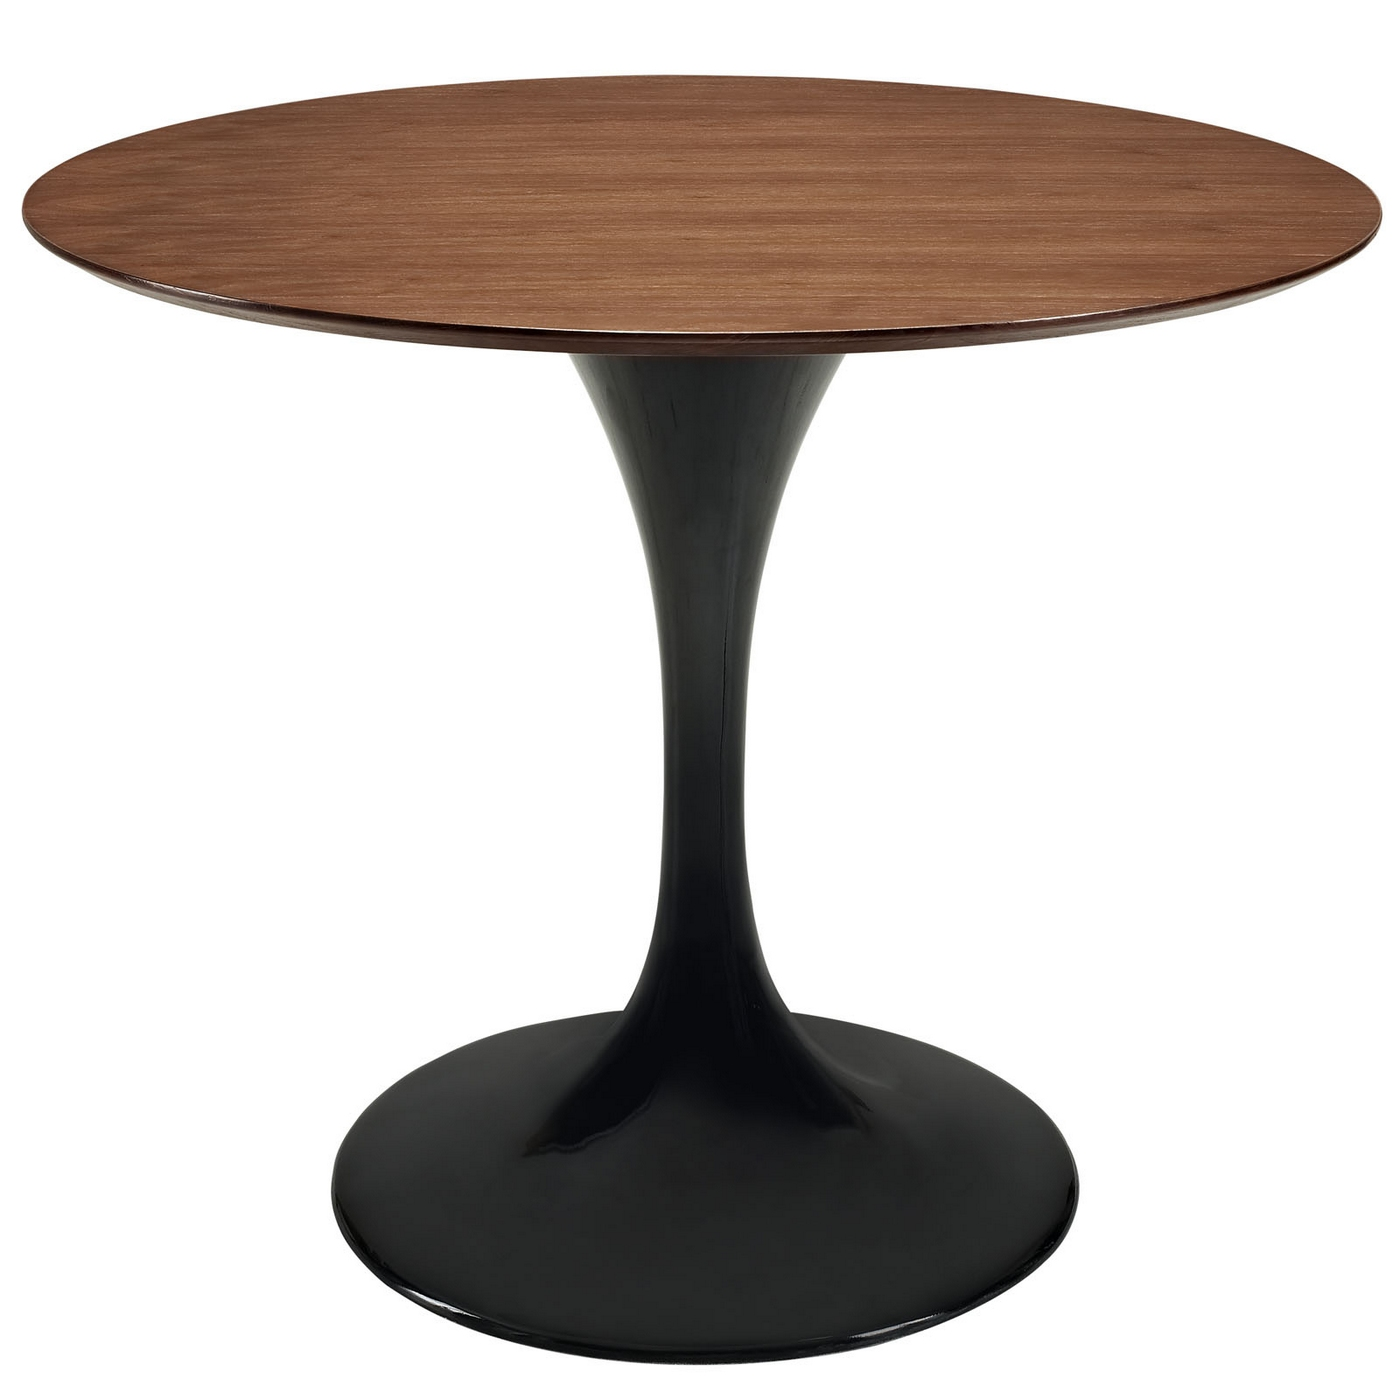 Lippa modern 36 walnut dining table w lacquered pedestal base black - Pedestal base for dining table ...